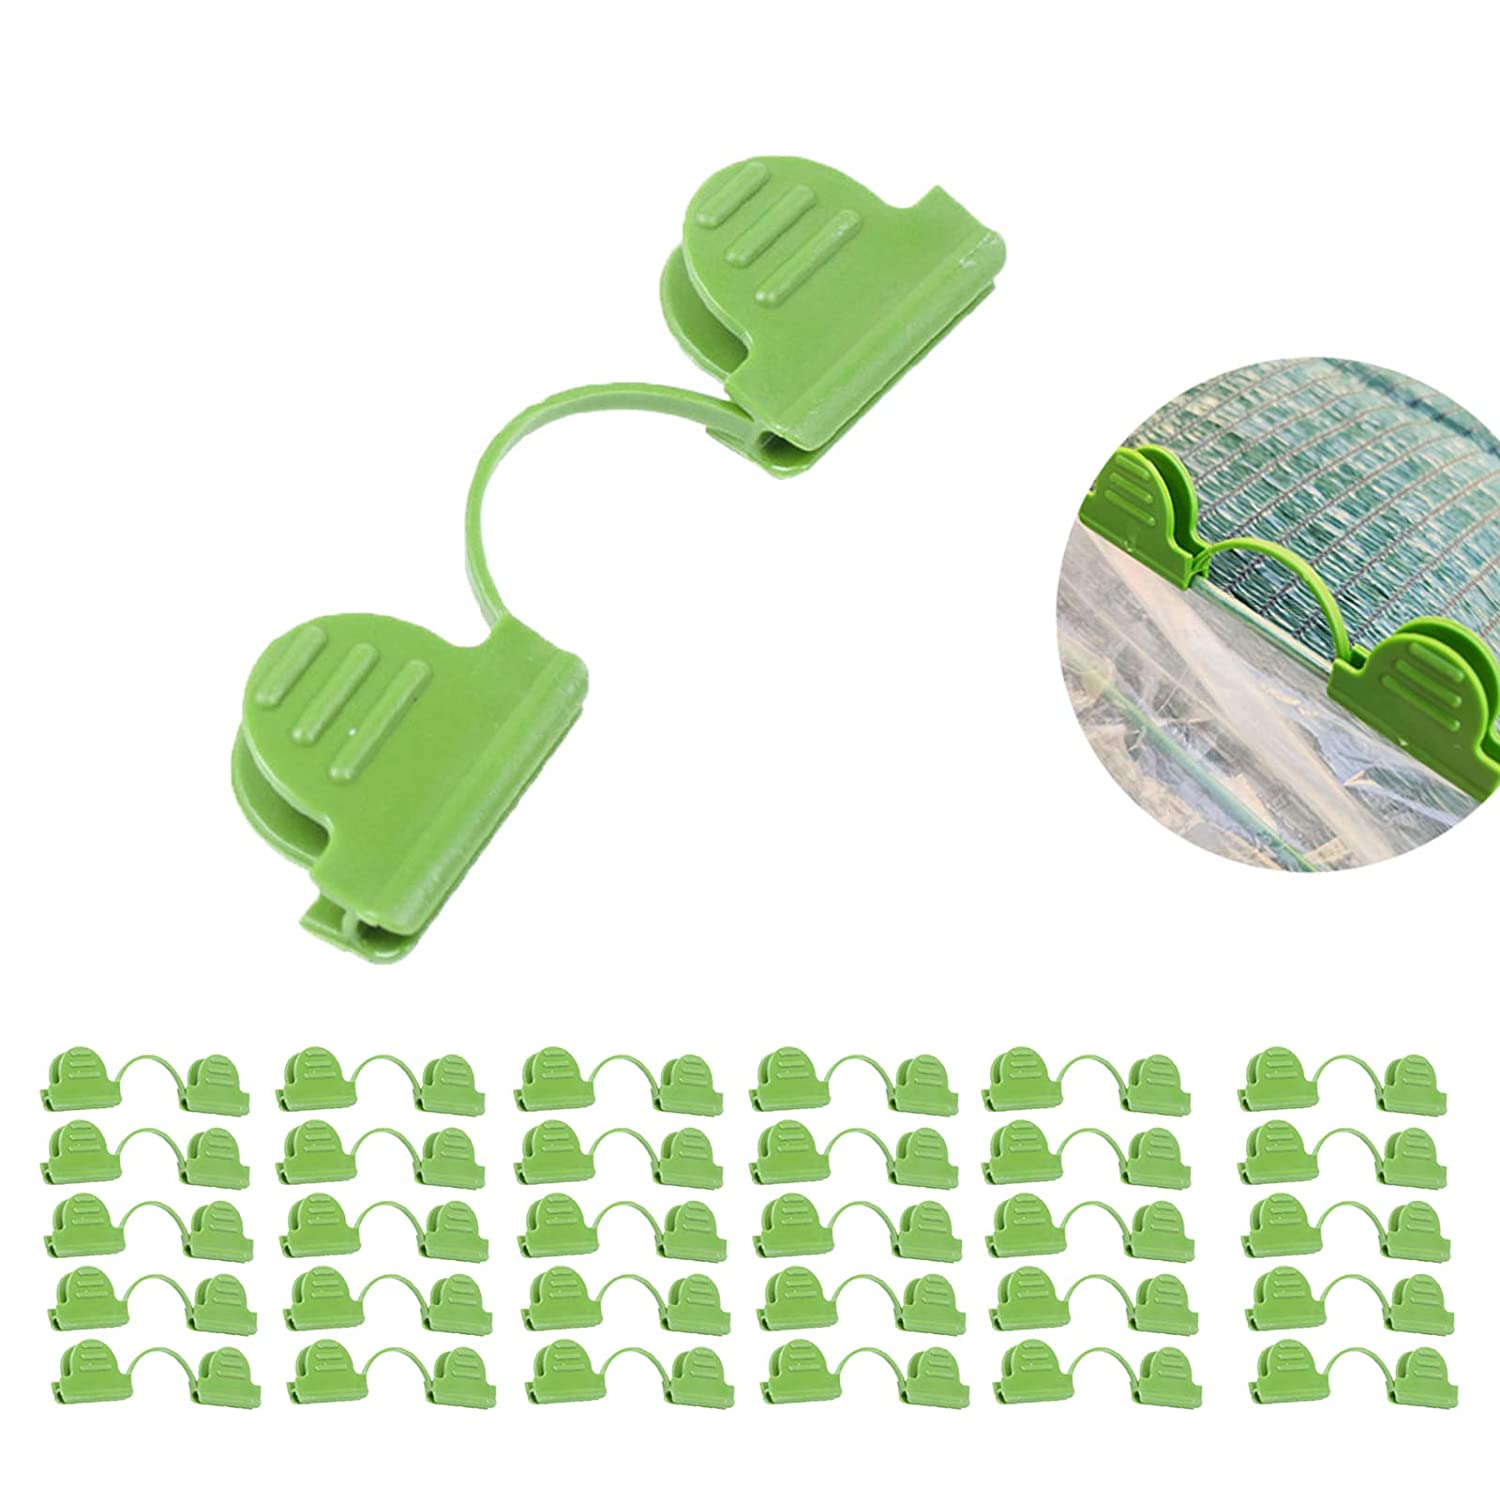 Film Insect Net Fixing Clips for Greenhouse Tunnel Shading Net LWAN3 30pcs Pipe Clamps for Diam 4mm 6mm Plant Stakes